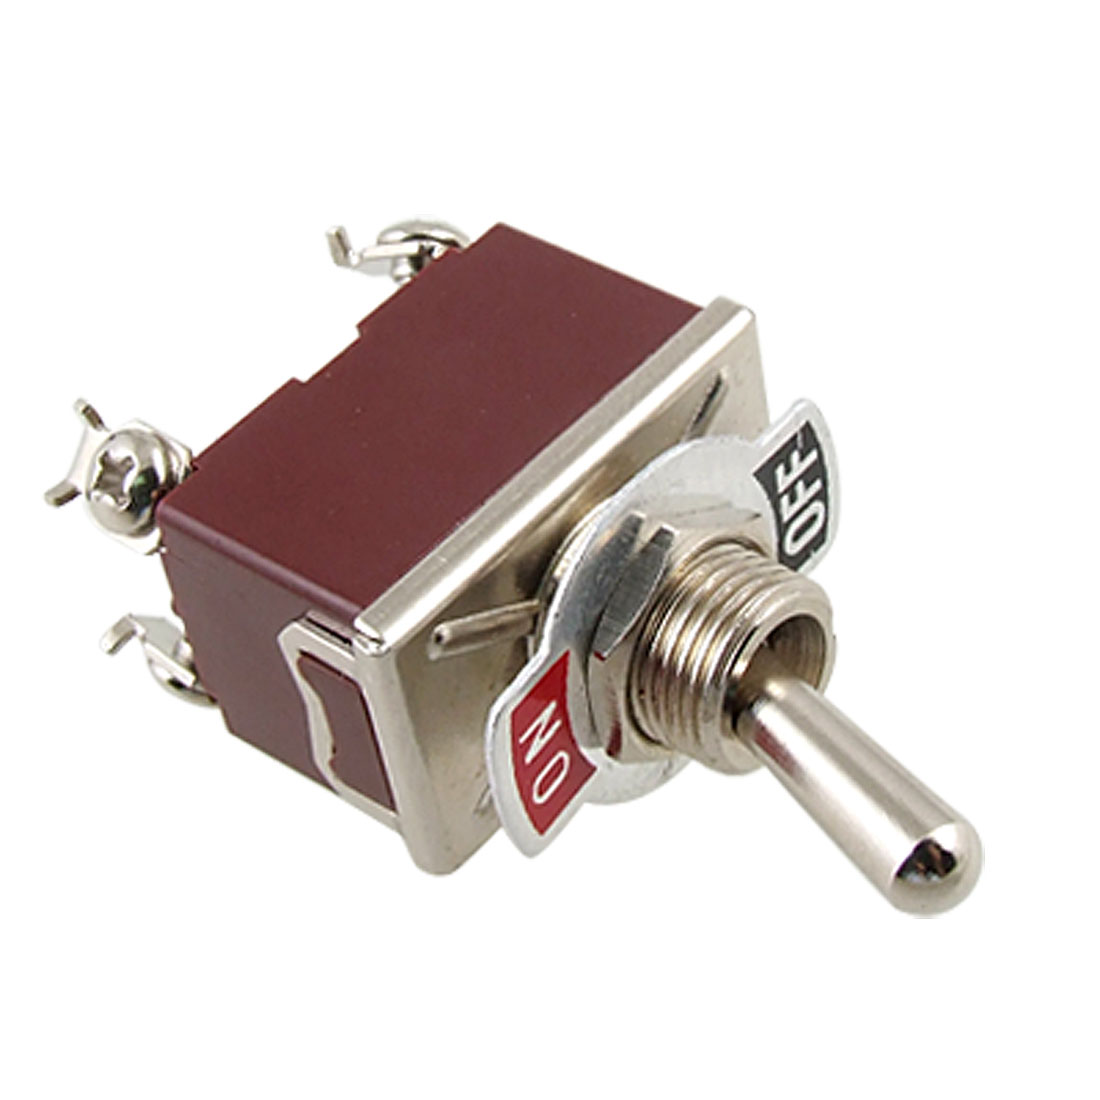 AC 250V 15A On/Off DPST 4 Screw Terminals Toggle Switch